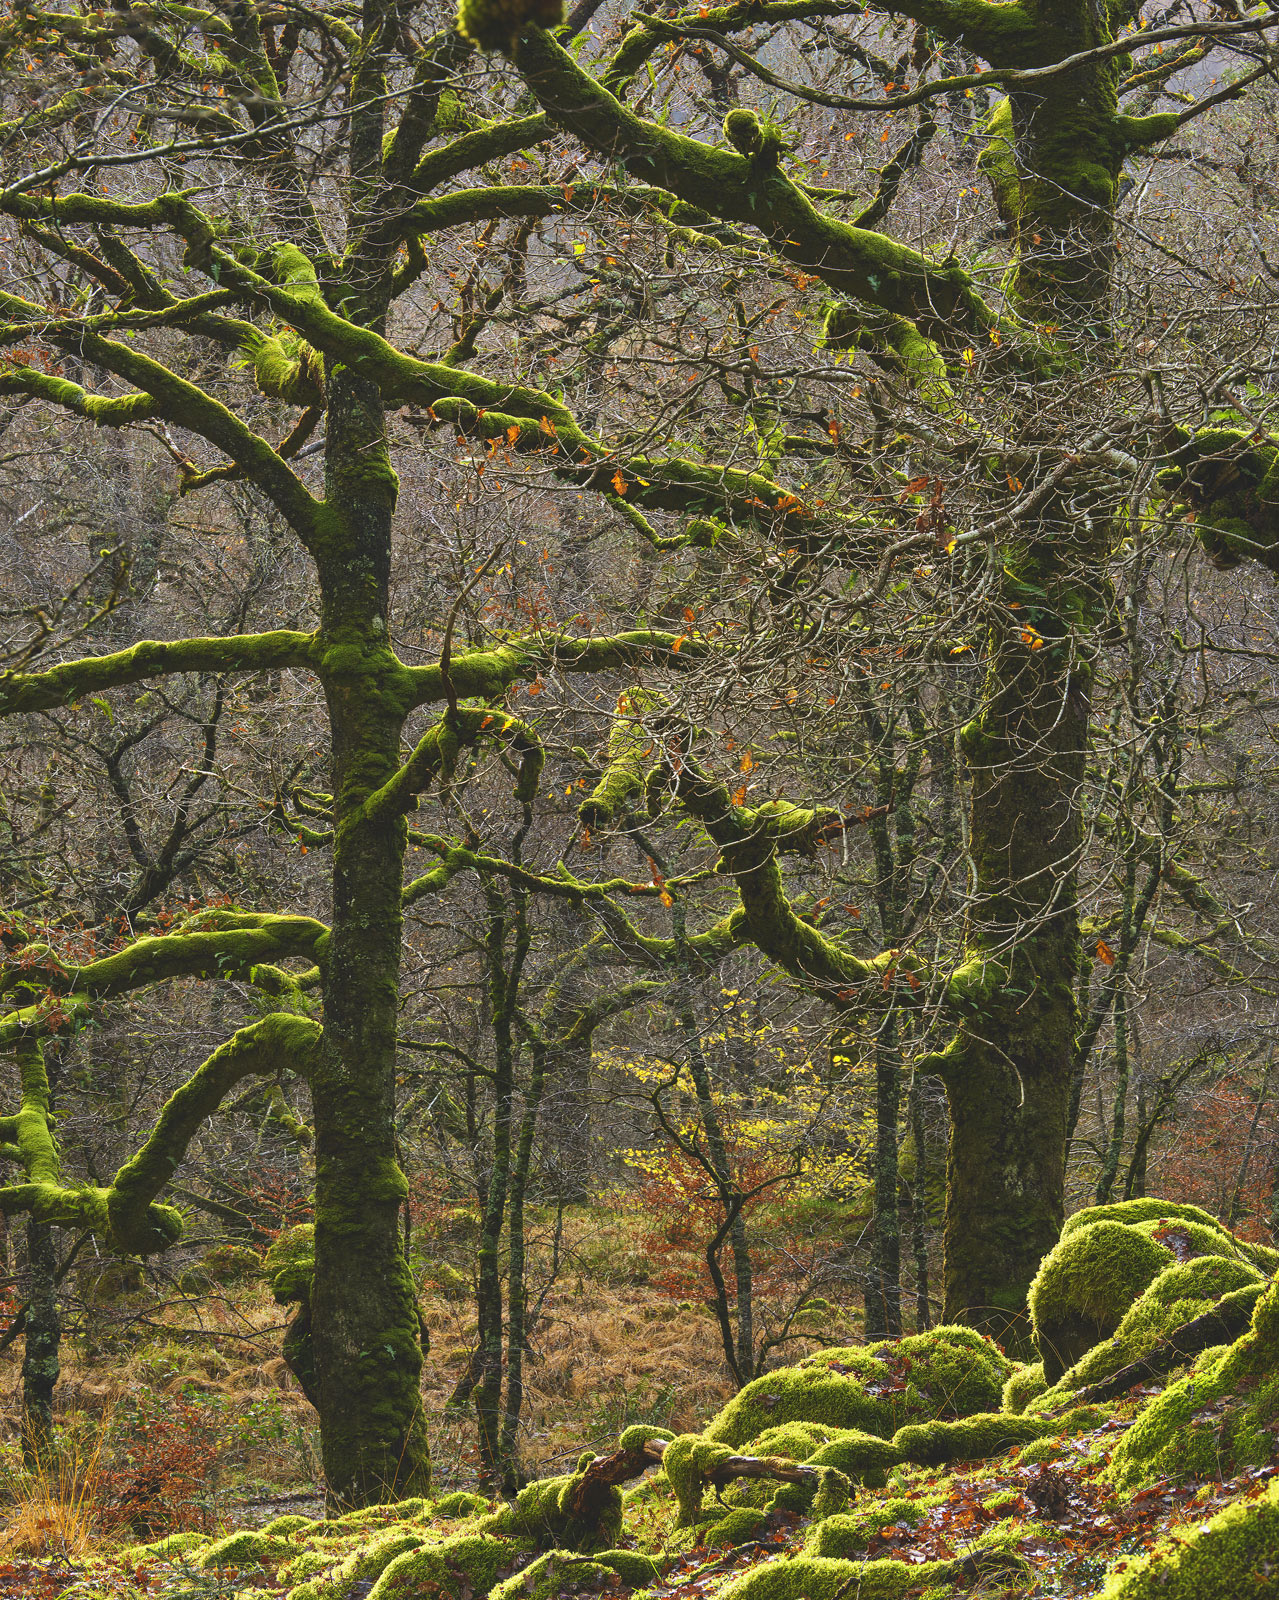 These fabulous Sessile oak trees are hidden away within Ariundle woods in Ardnamurchan, they drip with vivid green moss, pale...